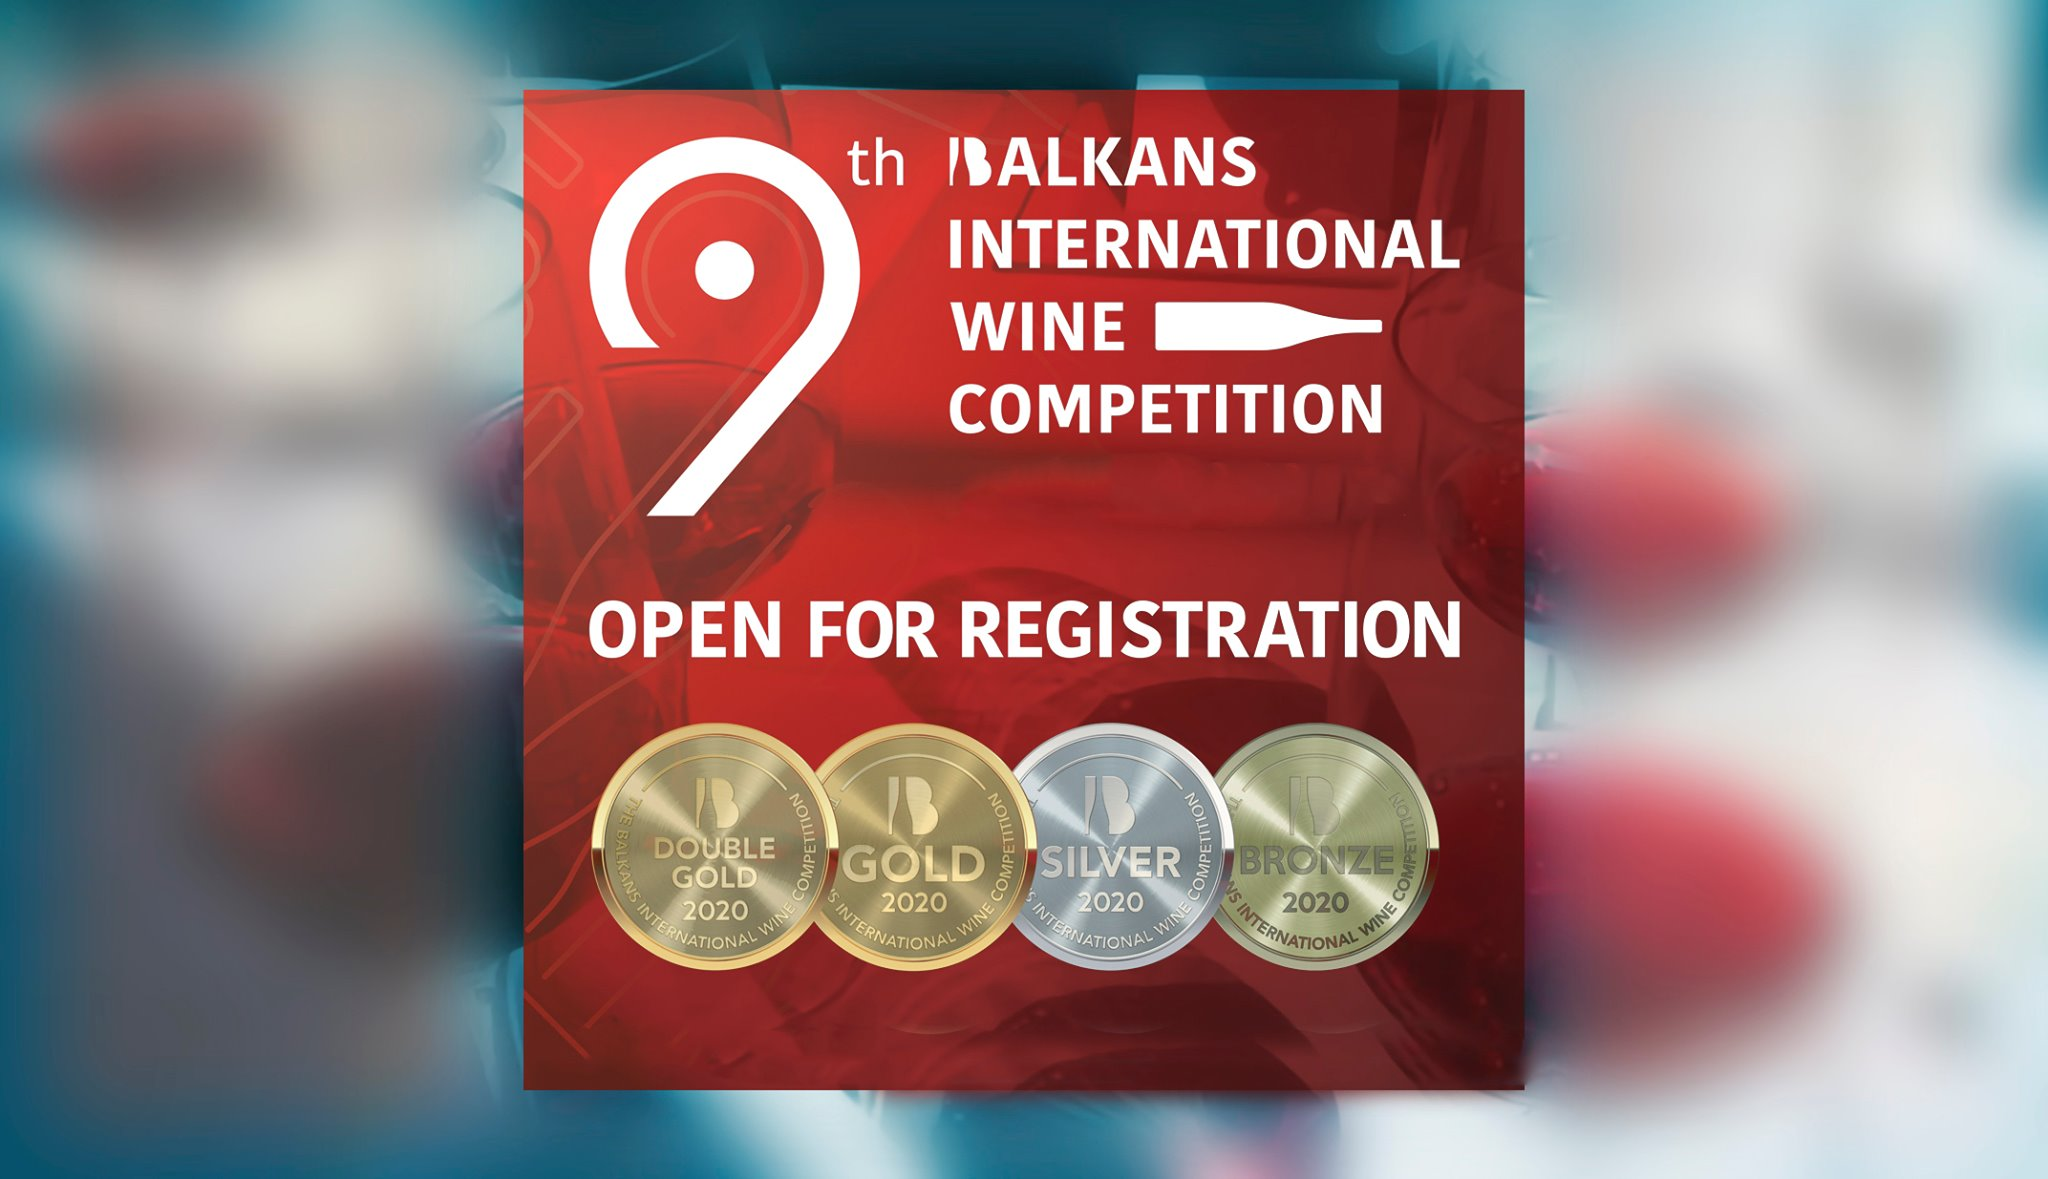 Belgrade Hosts the Balkans International Wine Competition (BIWC) 2020 in July